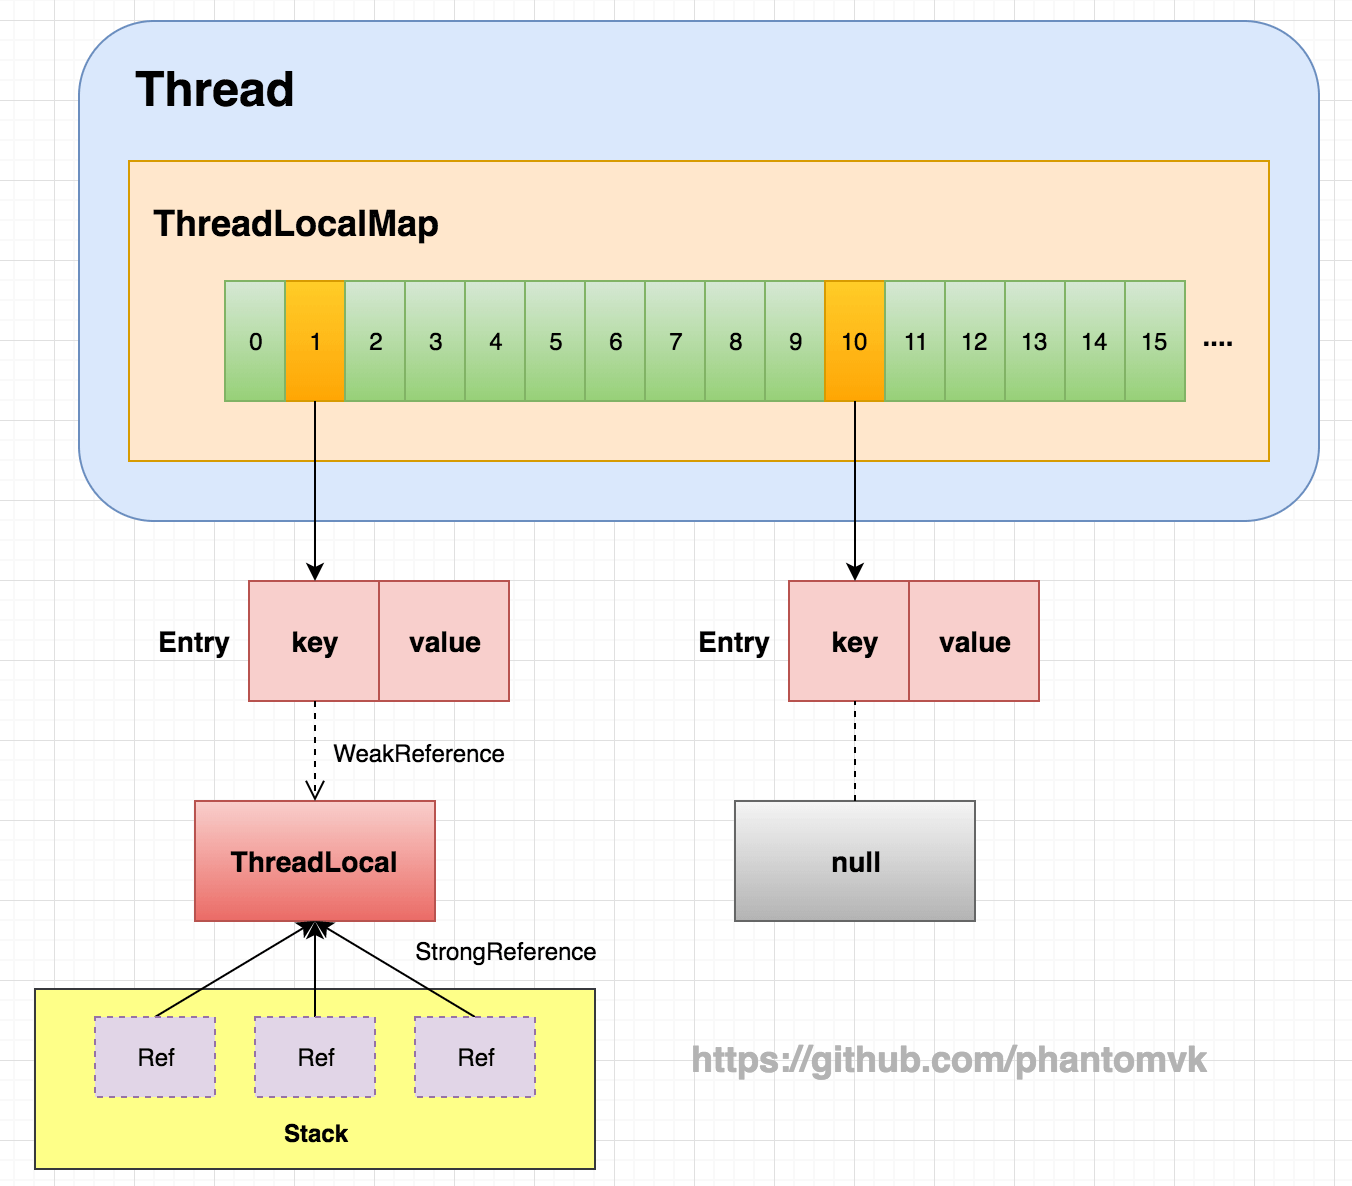 ThreadLoacalMap